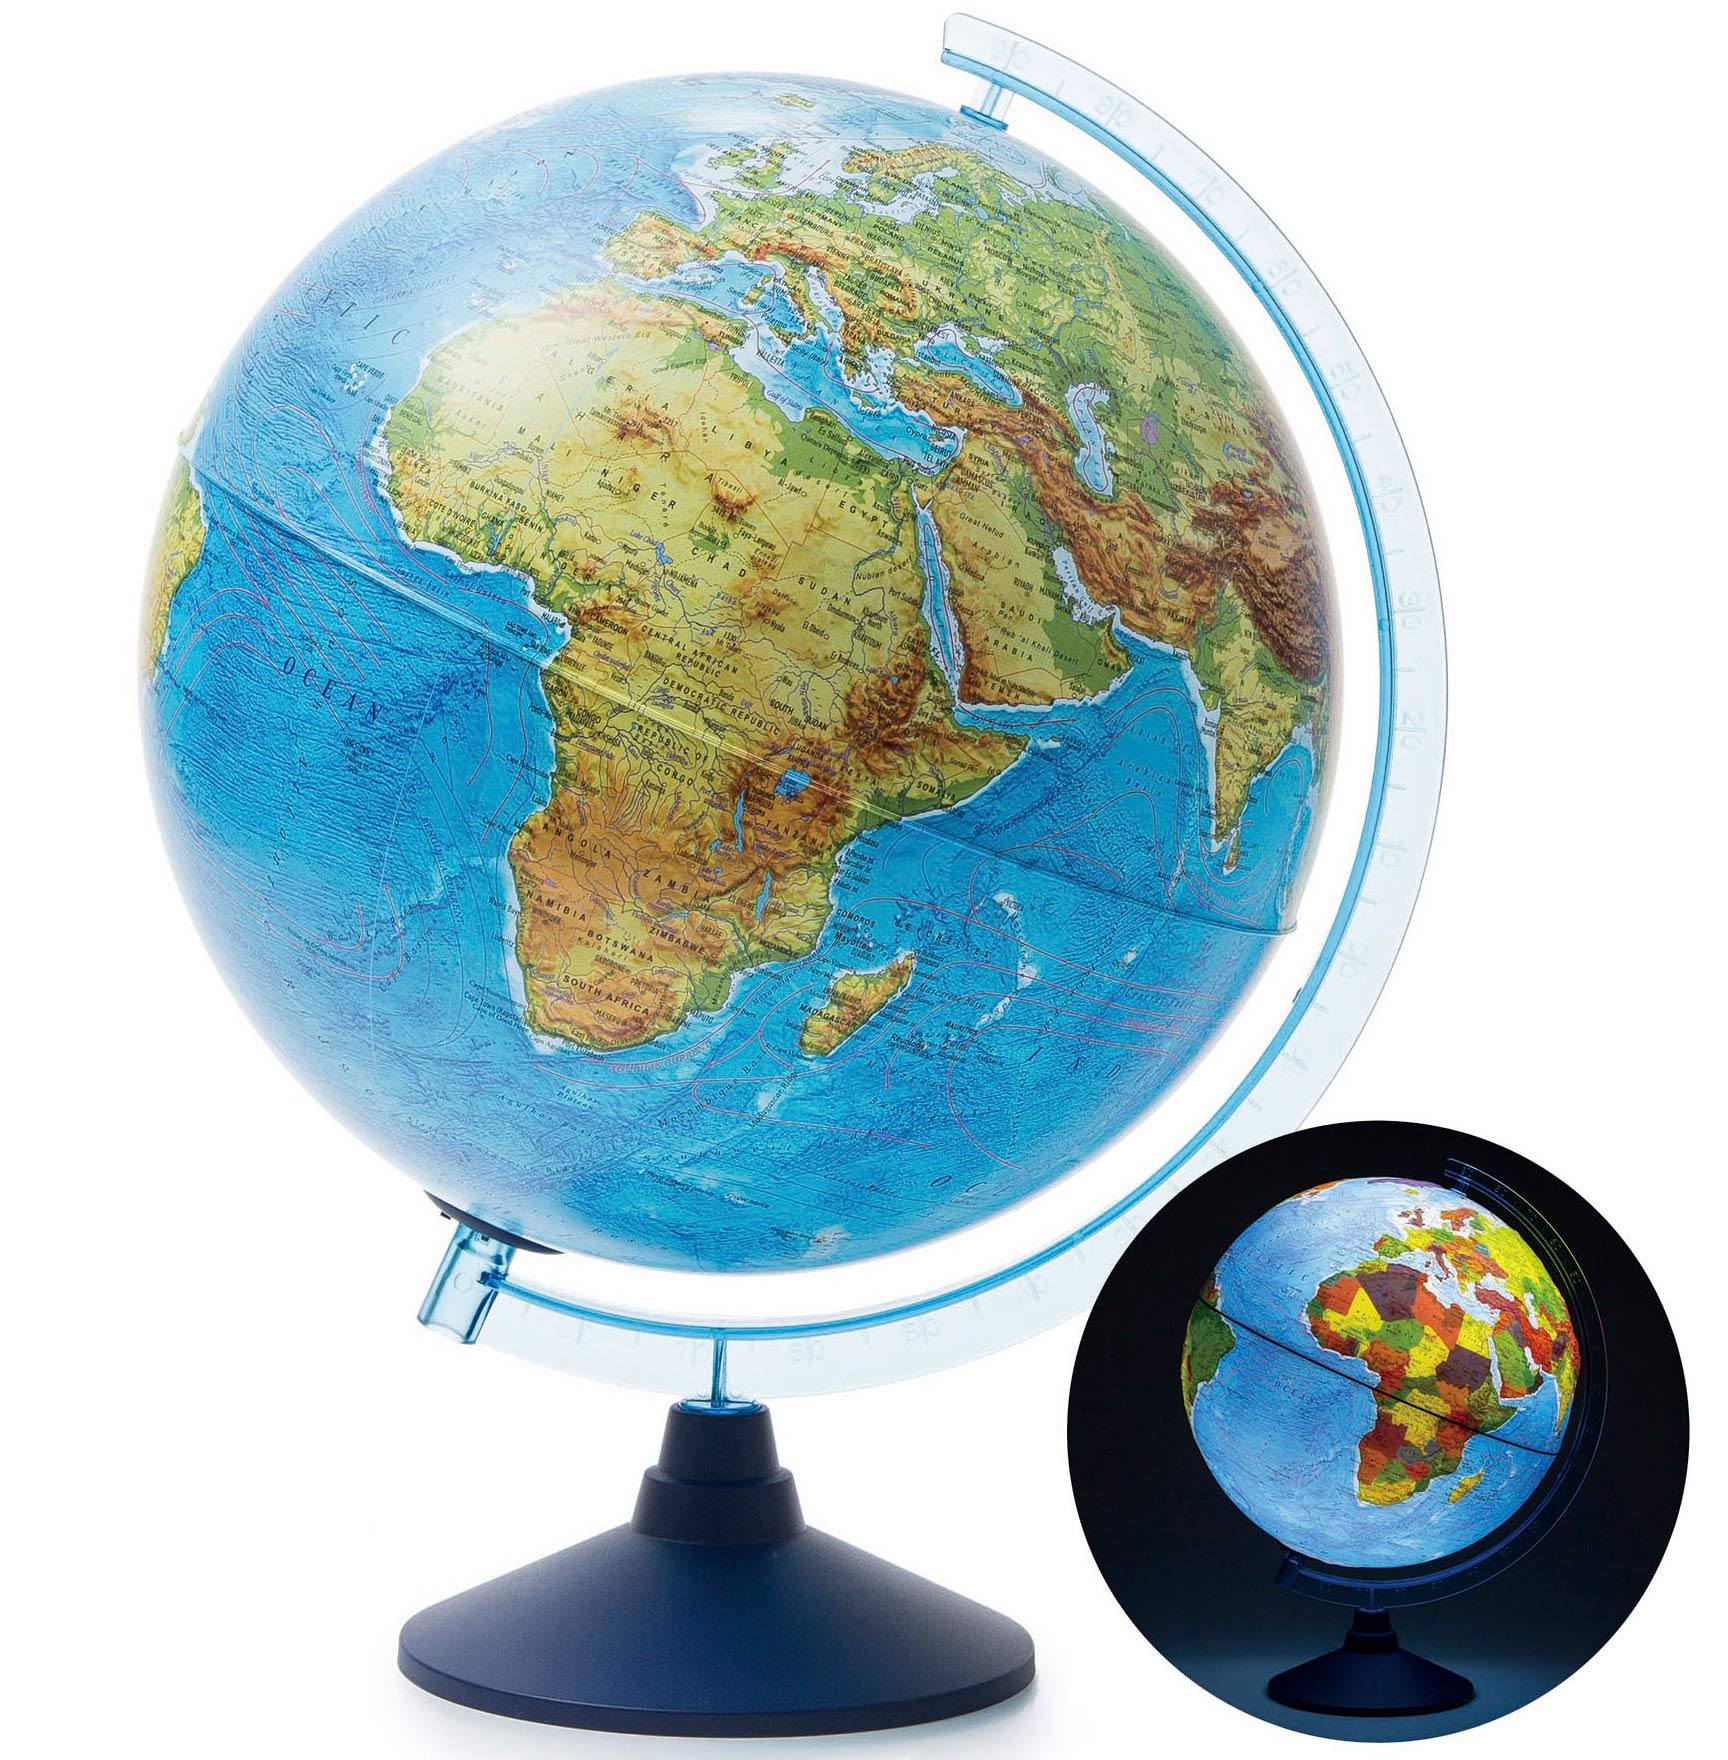 Exerz 10'' / 25cm Globe with Cable-Free LED Lighting/ 2 in 1 Illuminated - Physical/Political Dual Mapping - Educational and Fun - Topography/Geography/Ridge by Exerz